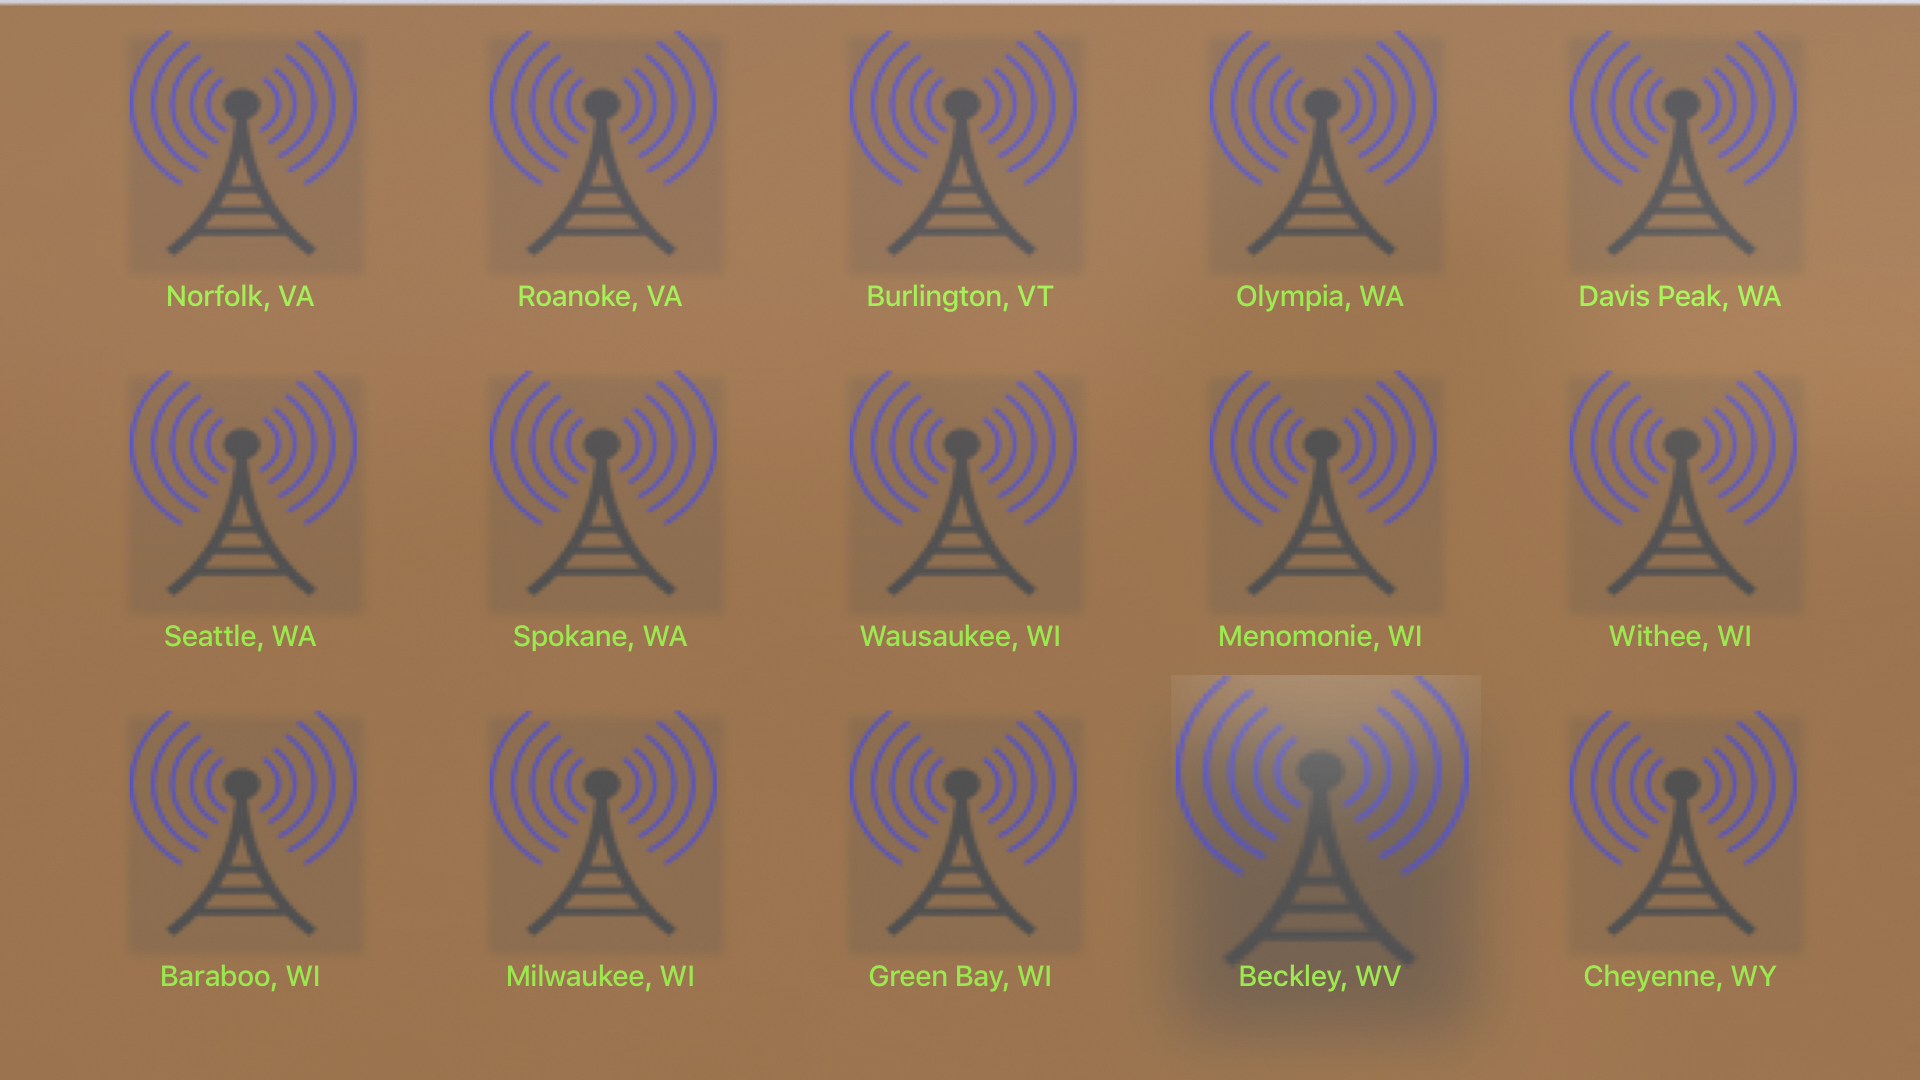 Instant NOAA Radios Elite screenshot 15